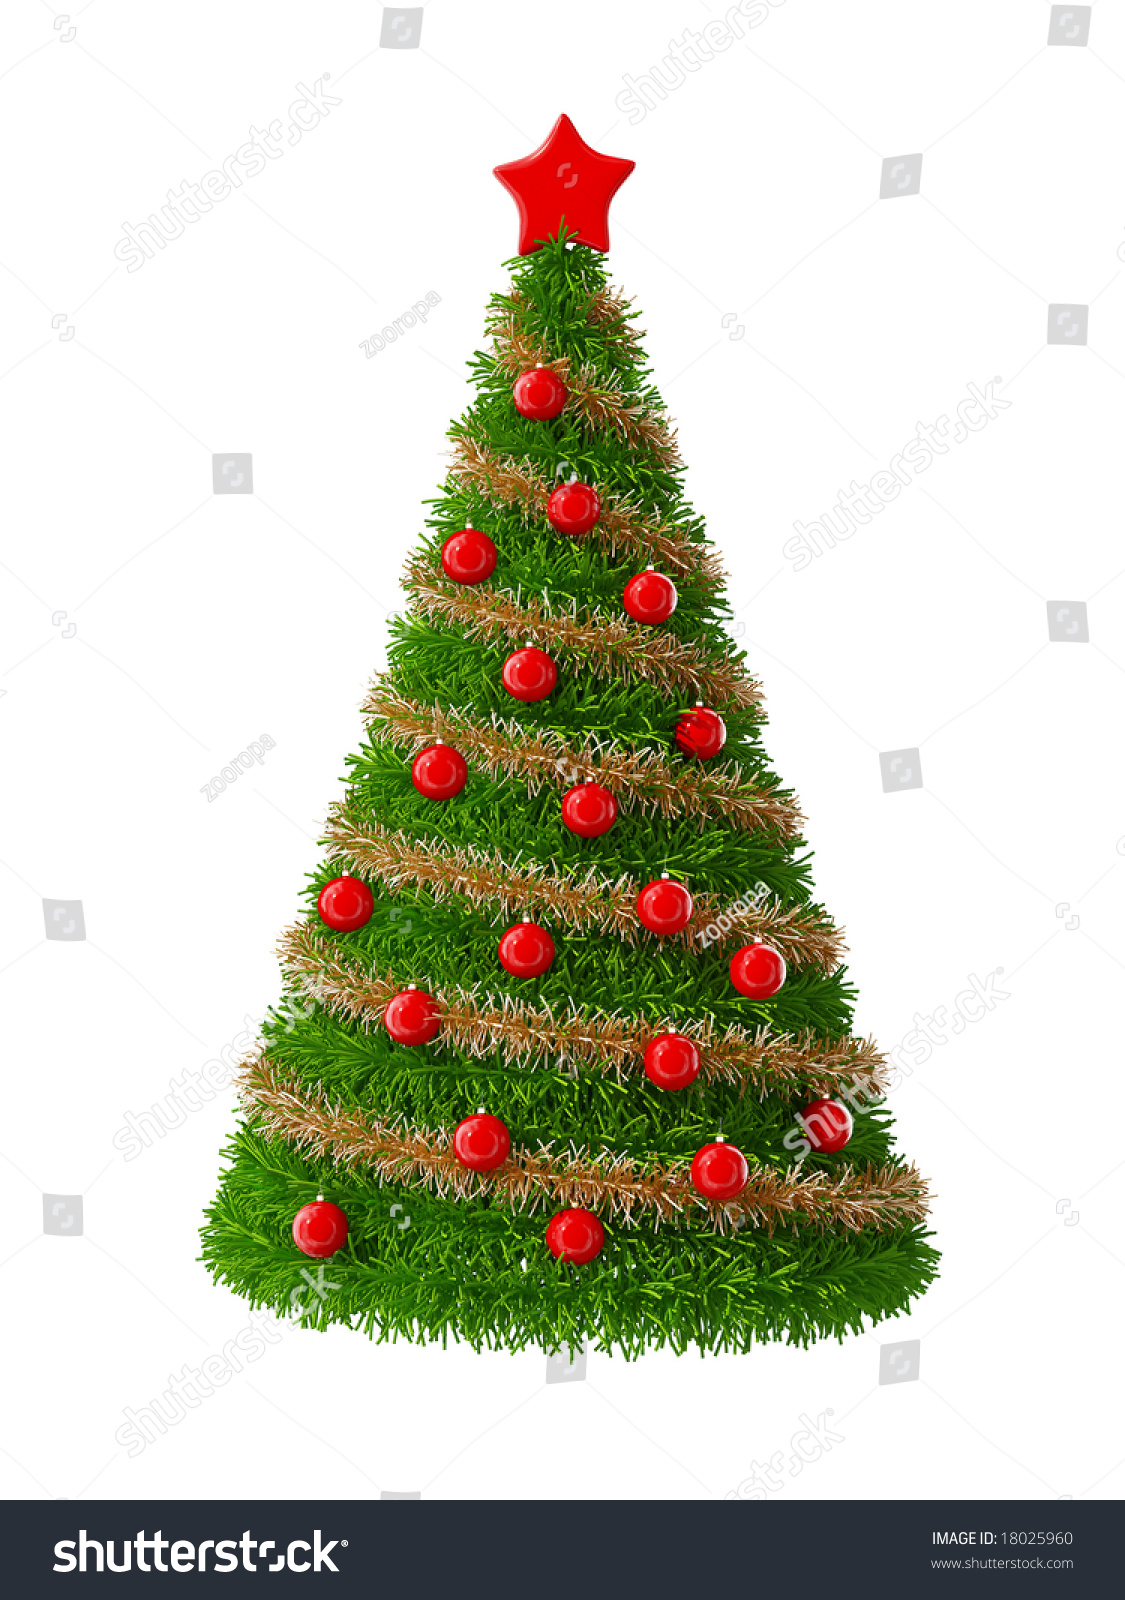 3d Christmas Tree Decorations Stock Illustration 18025960 - Shutterstock